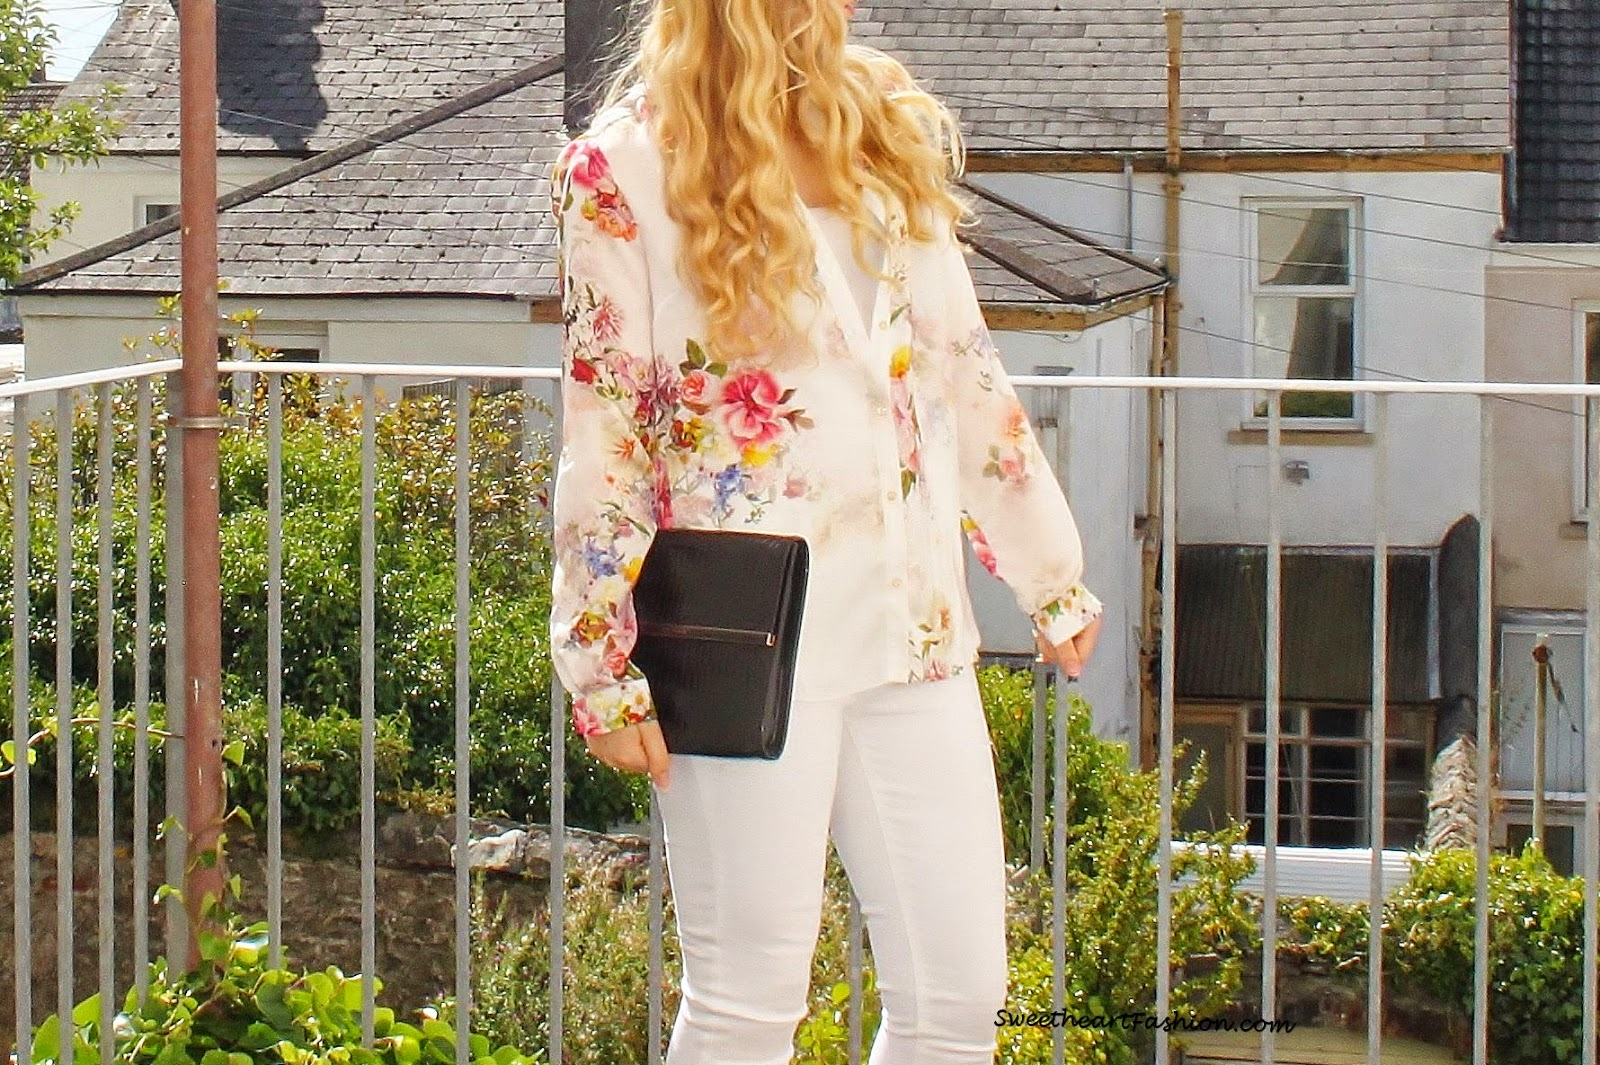 Sweetheart Fashion Chic White Skinny Jeans Floral Shirt